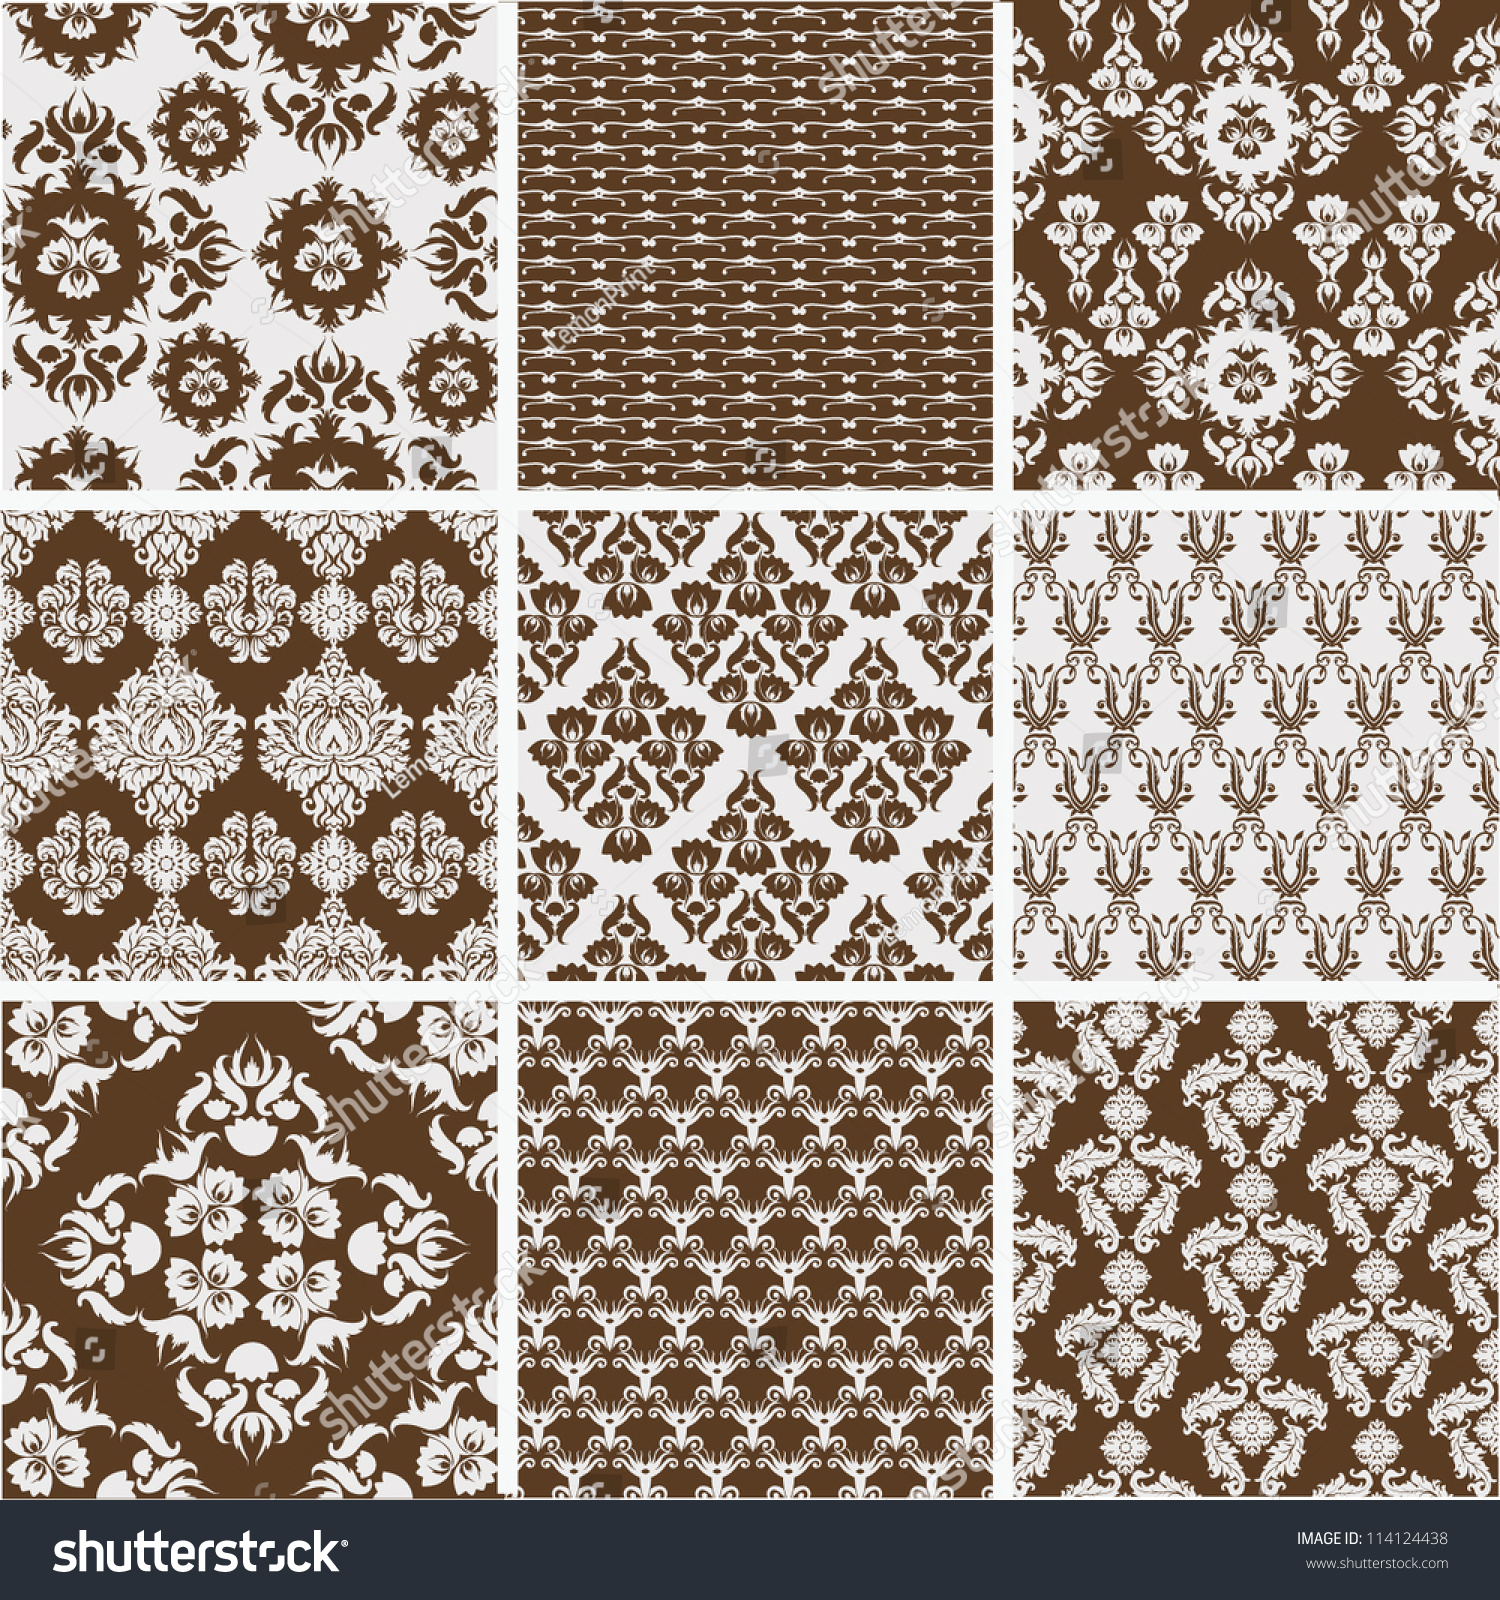 Collection Of Damask Designs Stock Vector Illustration 114124438 ...